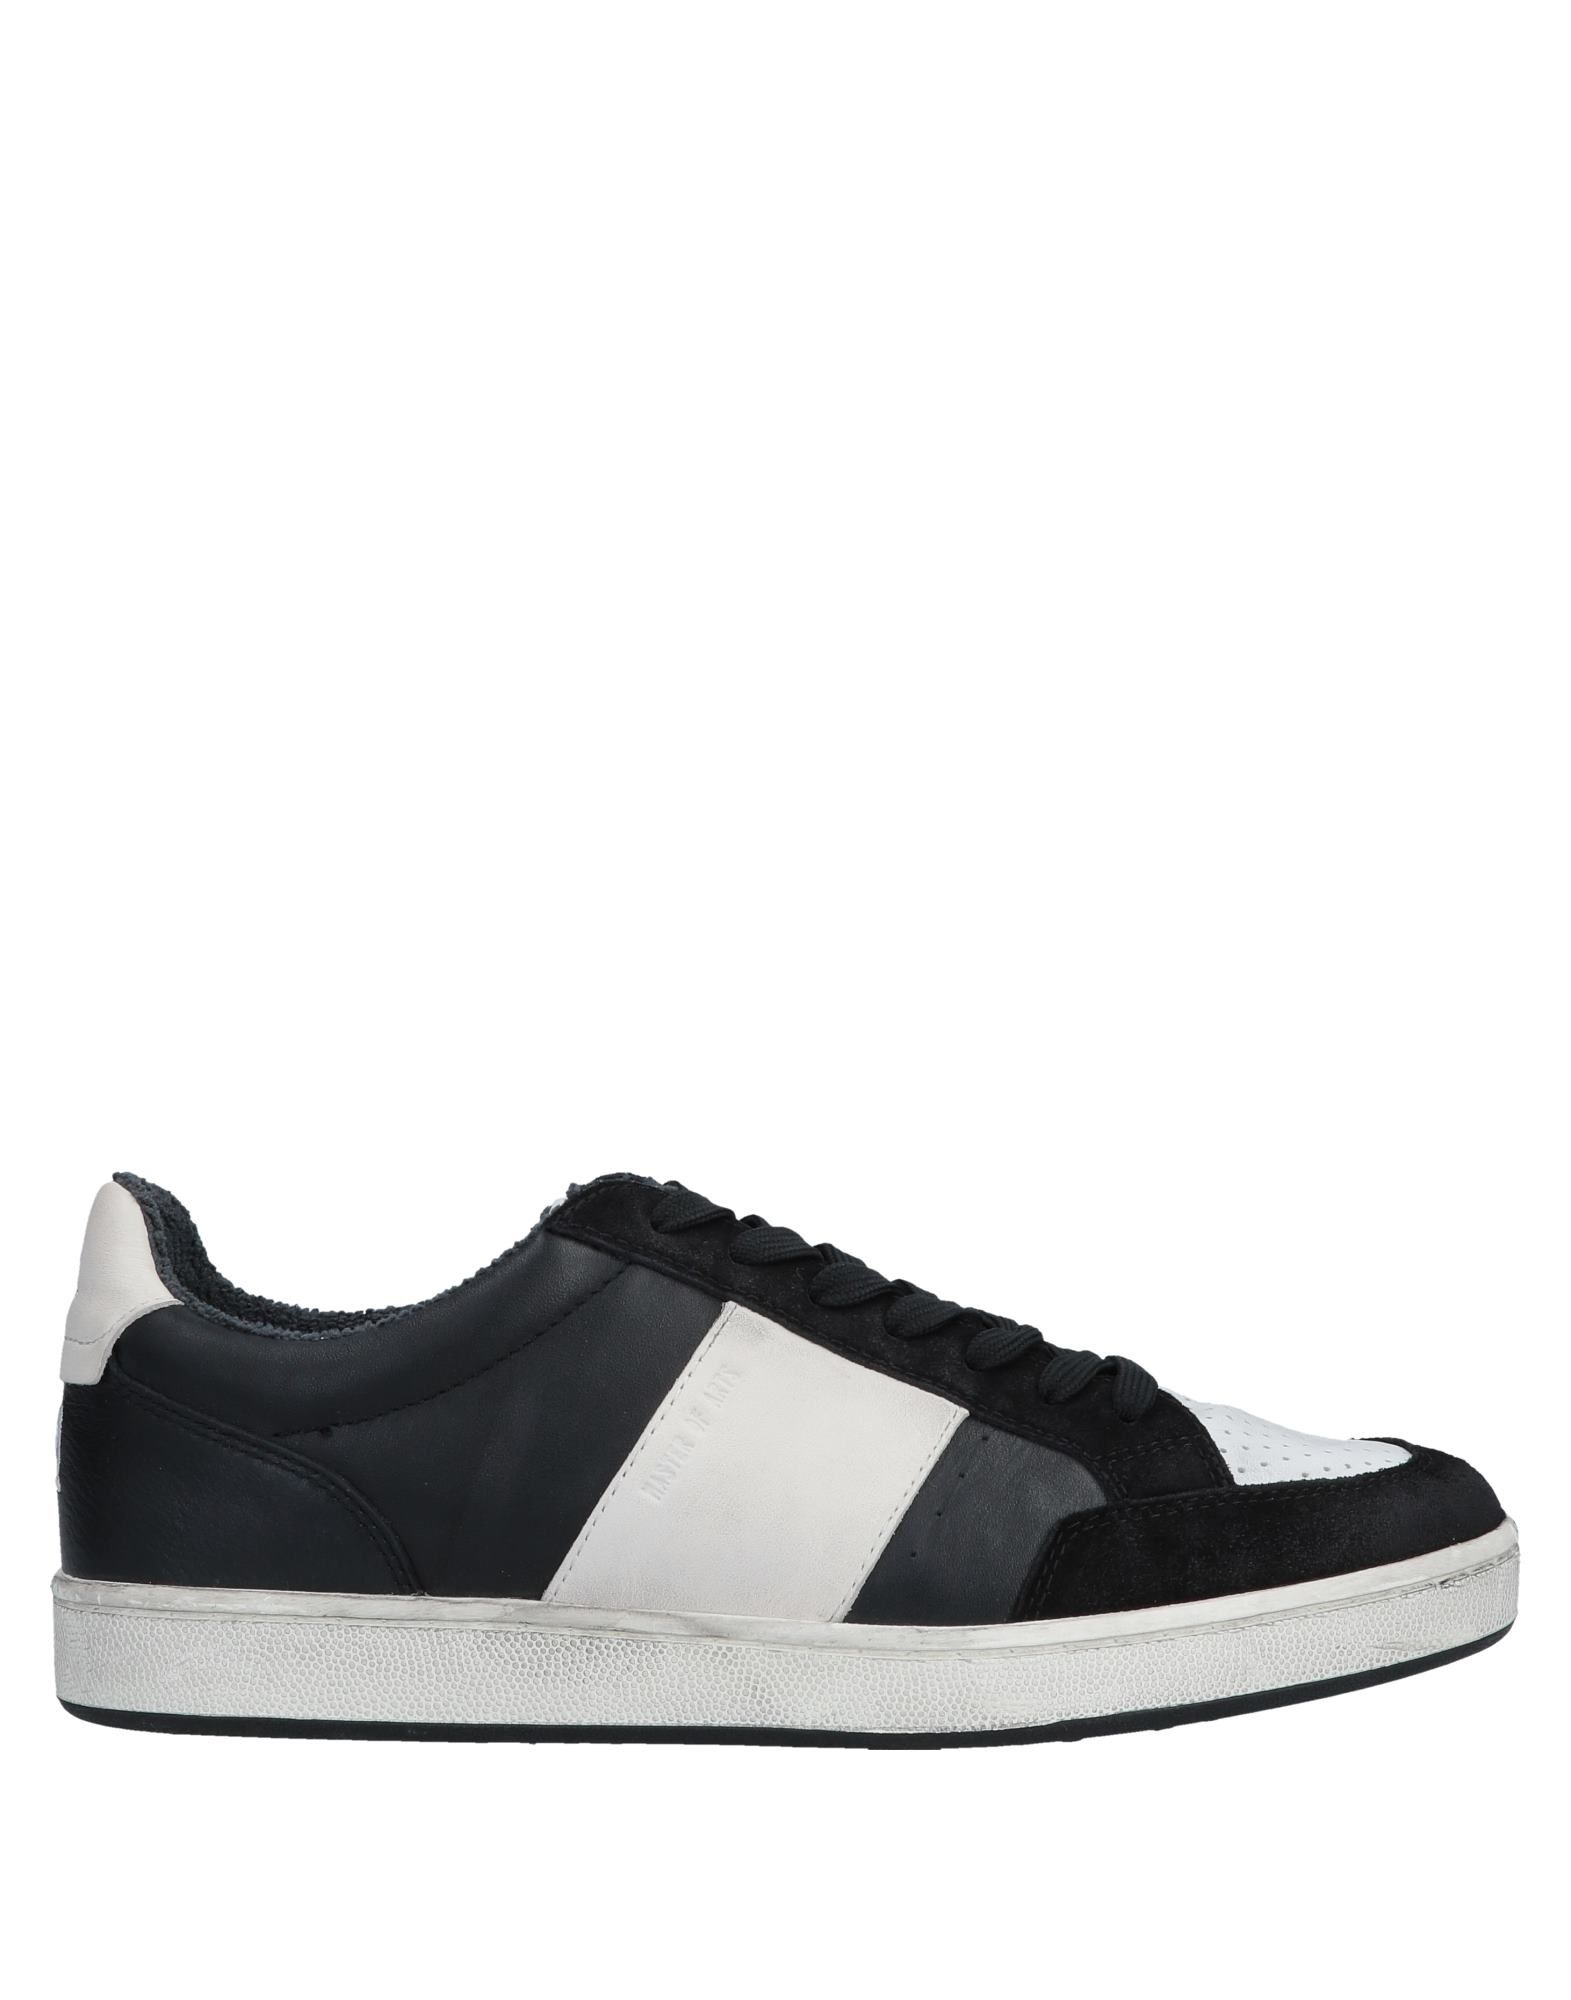 Baskets Moa Master Of Arts Homme - baskets Moa Master Of Arts   - 11612662MG